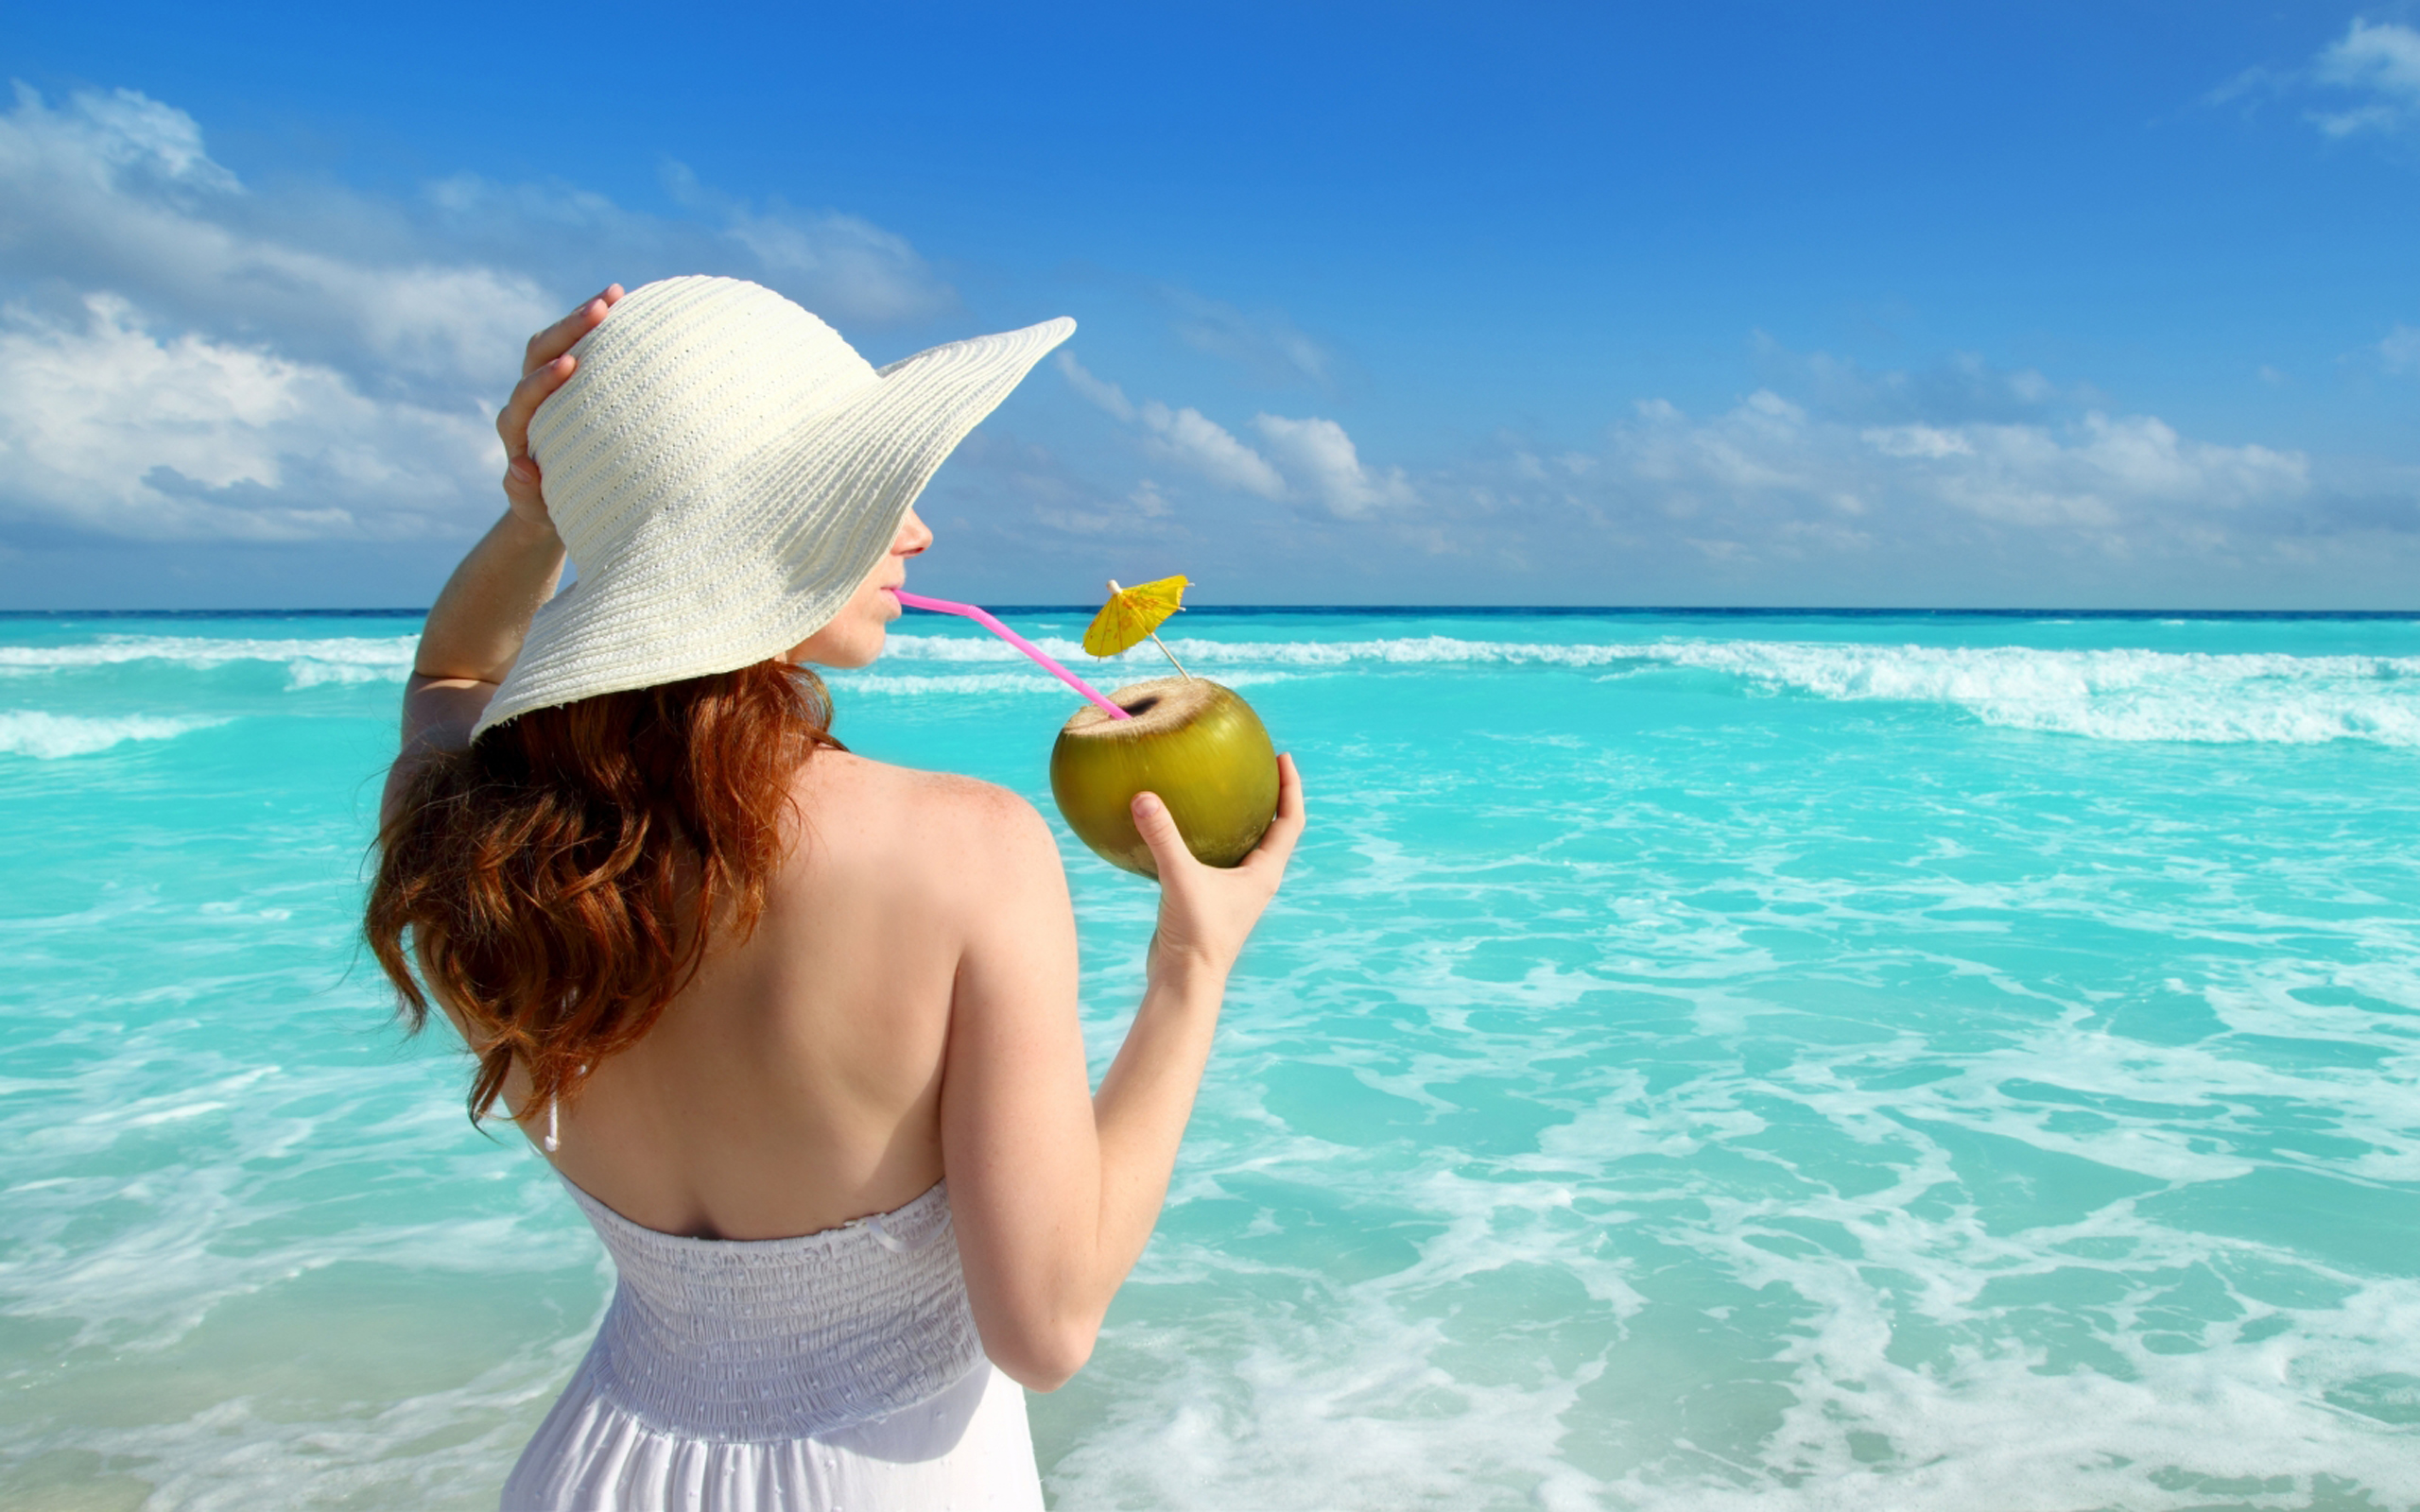 Woman on Tropical Beach Image - ID: 303475 - Image Abyss